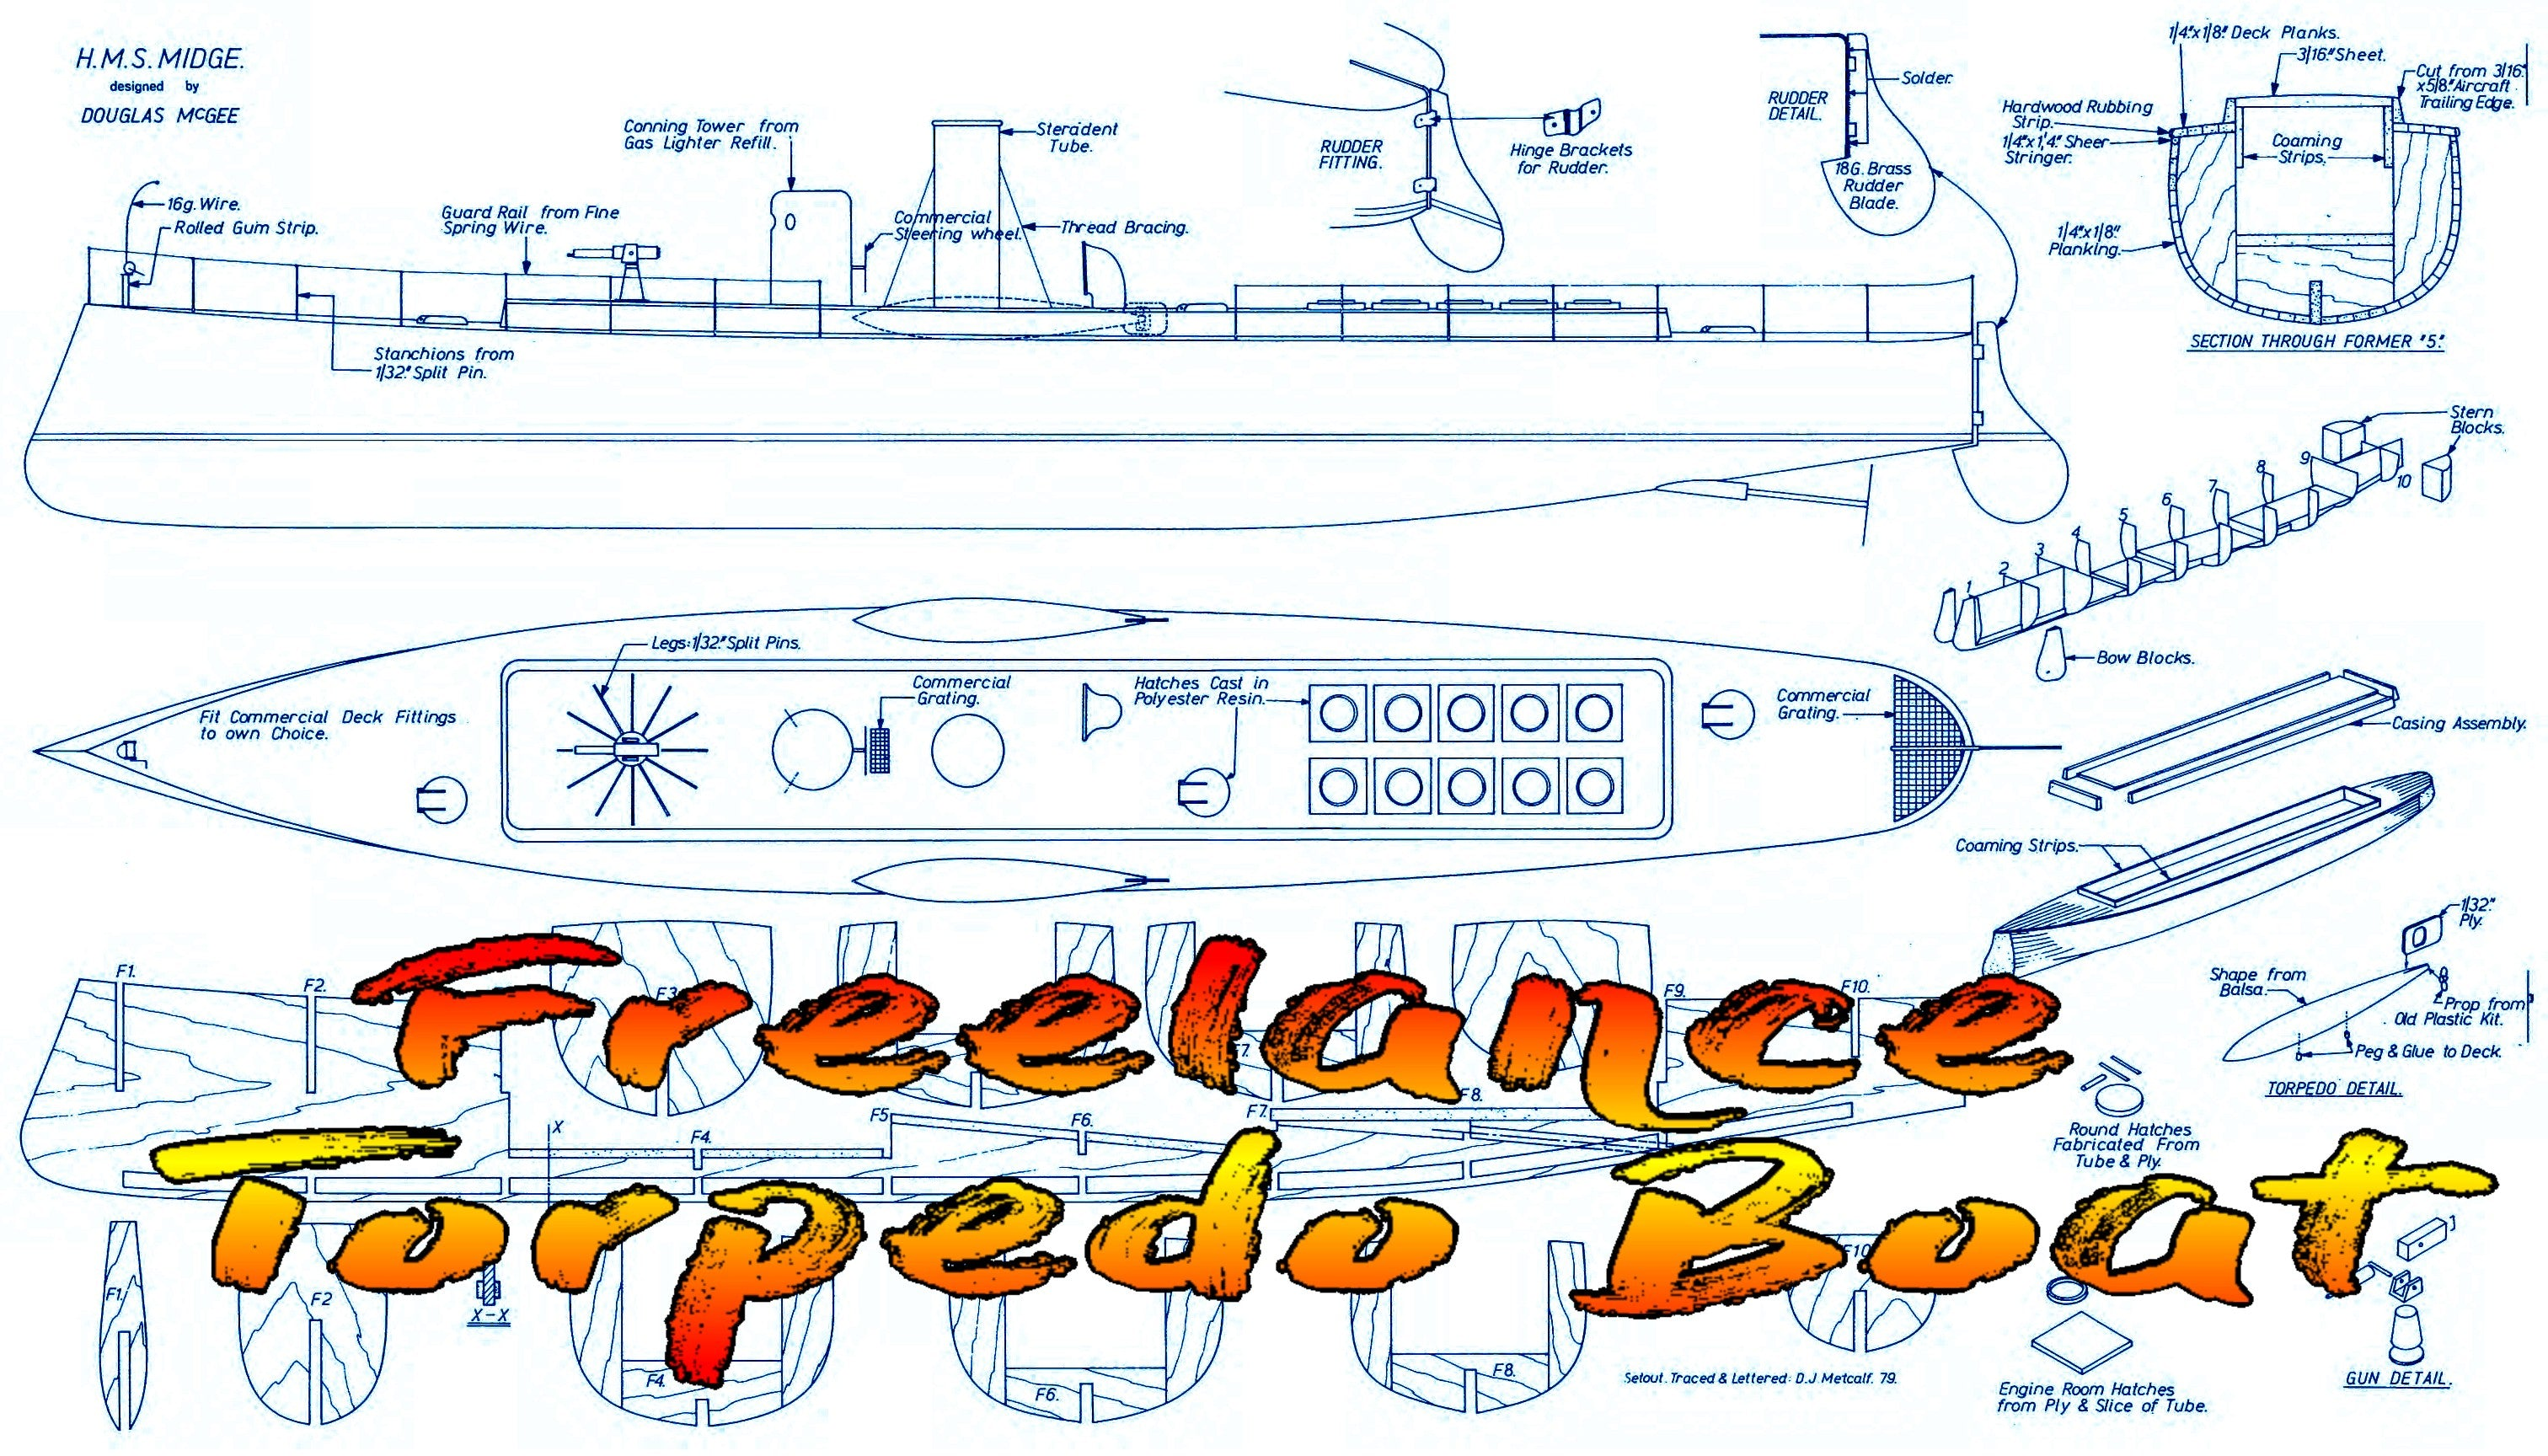 "Full Size Printed Plans Freelance Torpedo Boat L 32"" Suitable for electric power and Radio Control"